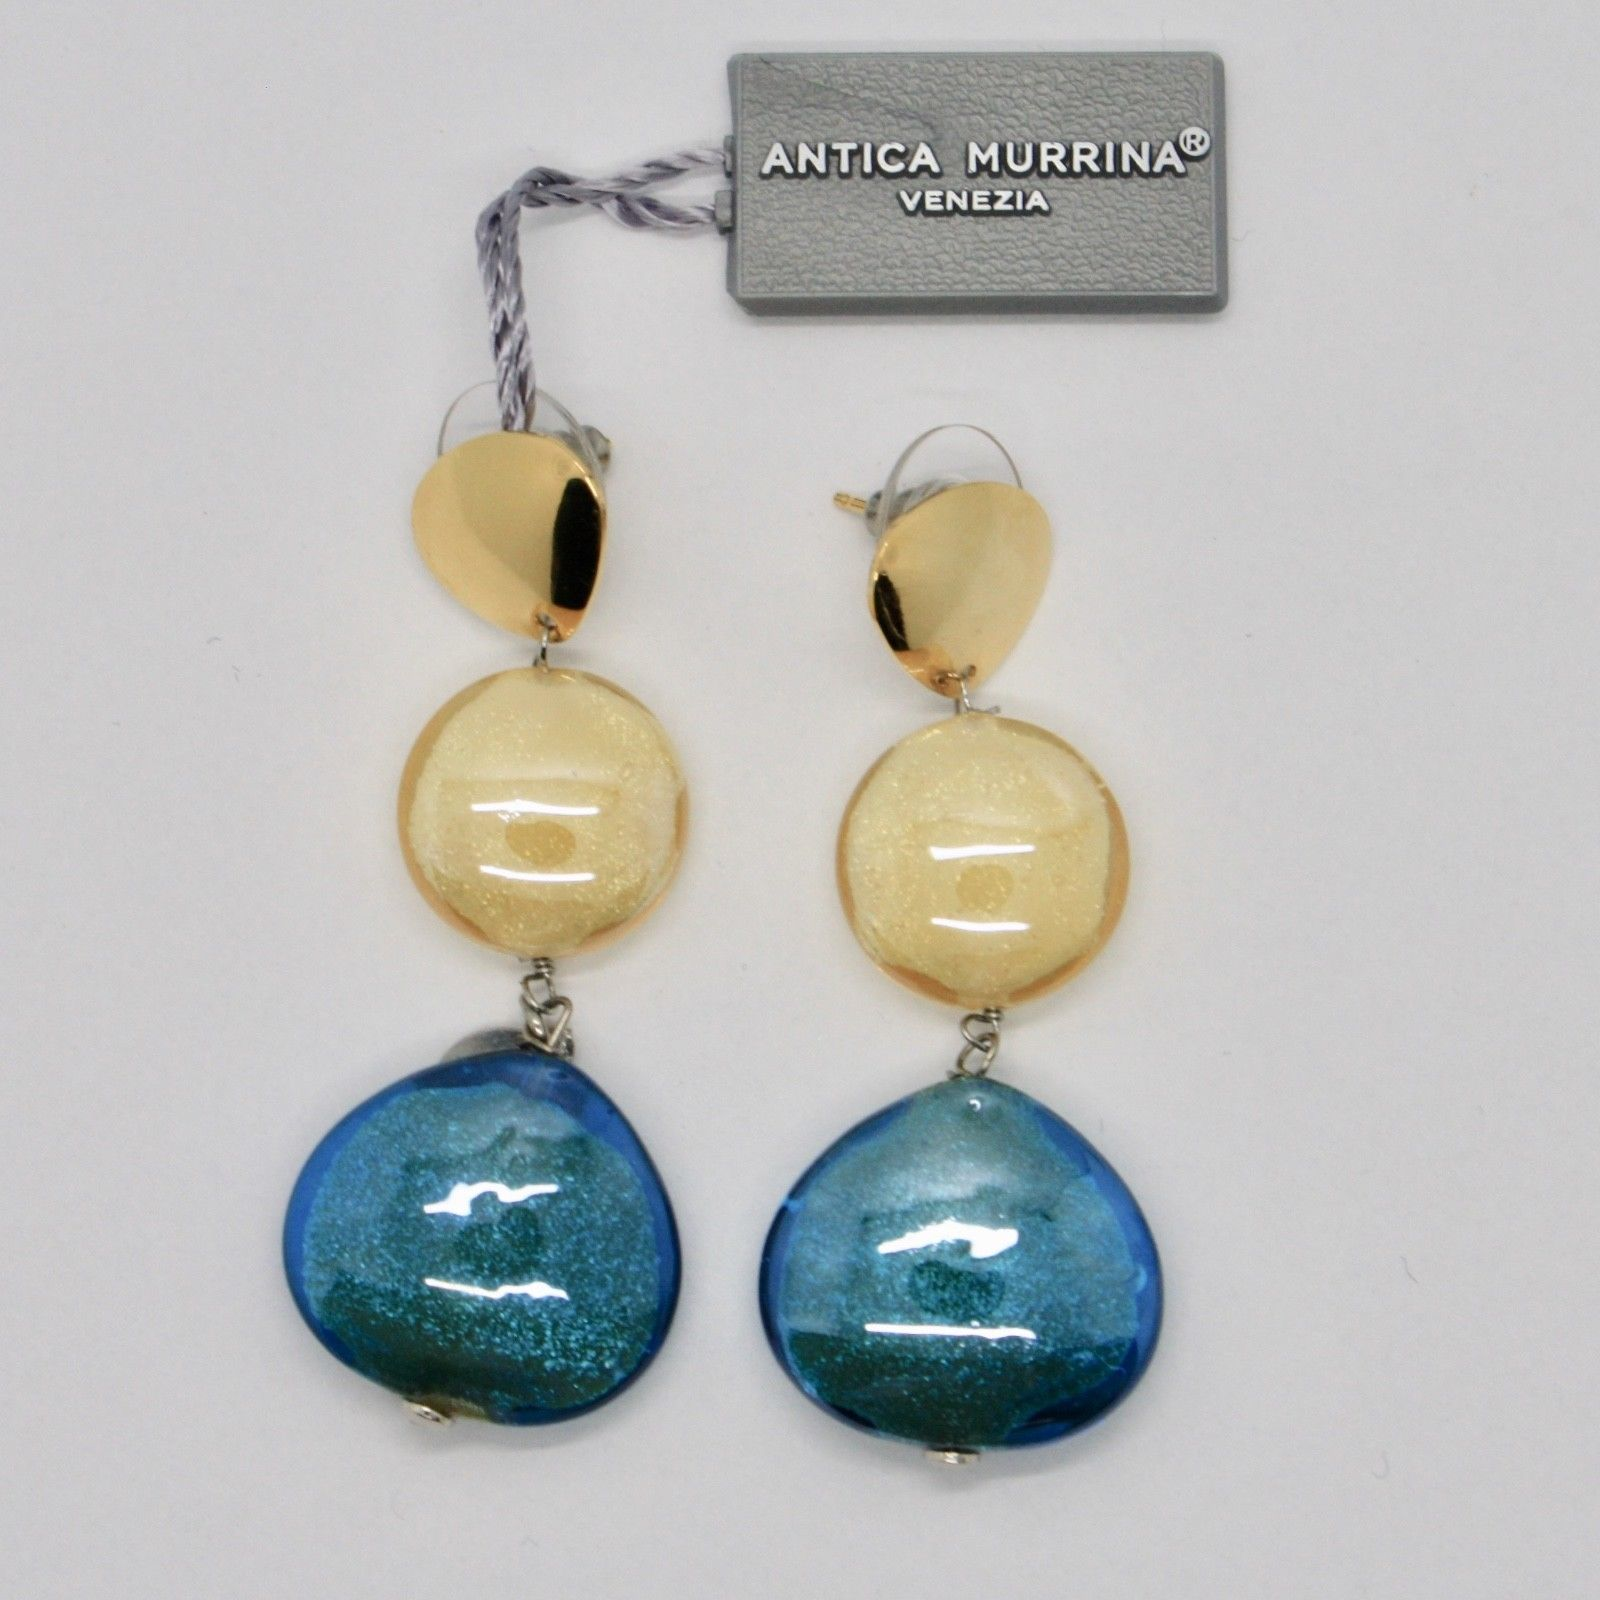 EARRINGS ANTICA MURRINA VENEZIA WITH MURANO GLASS YELLOW AND BLUE OR589A19